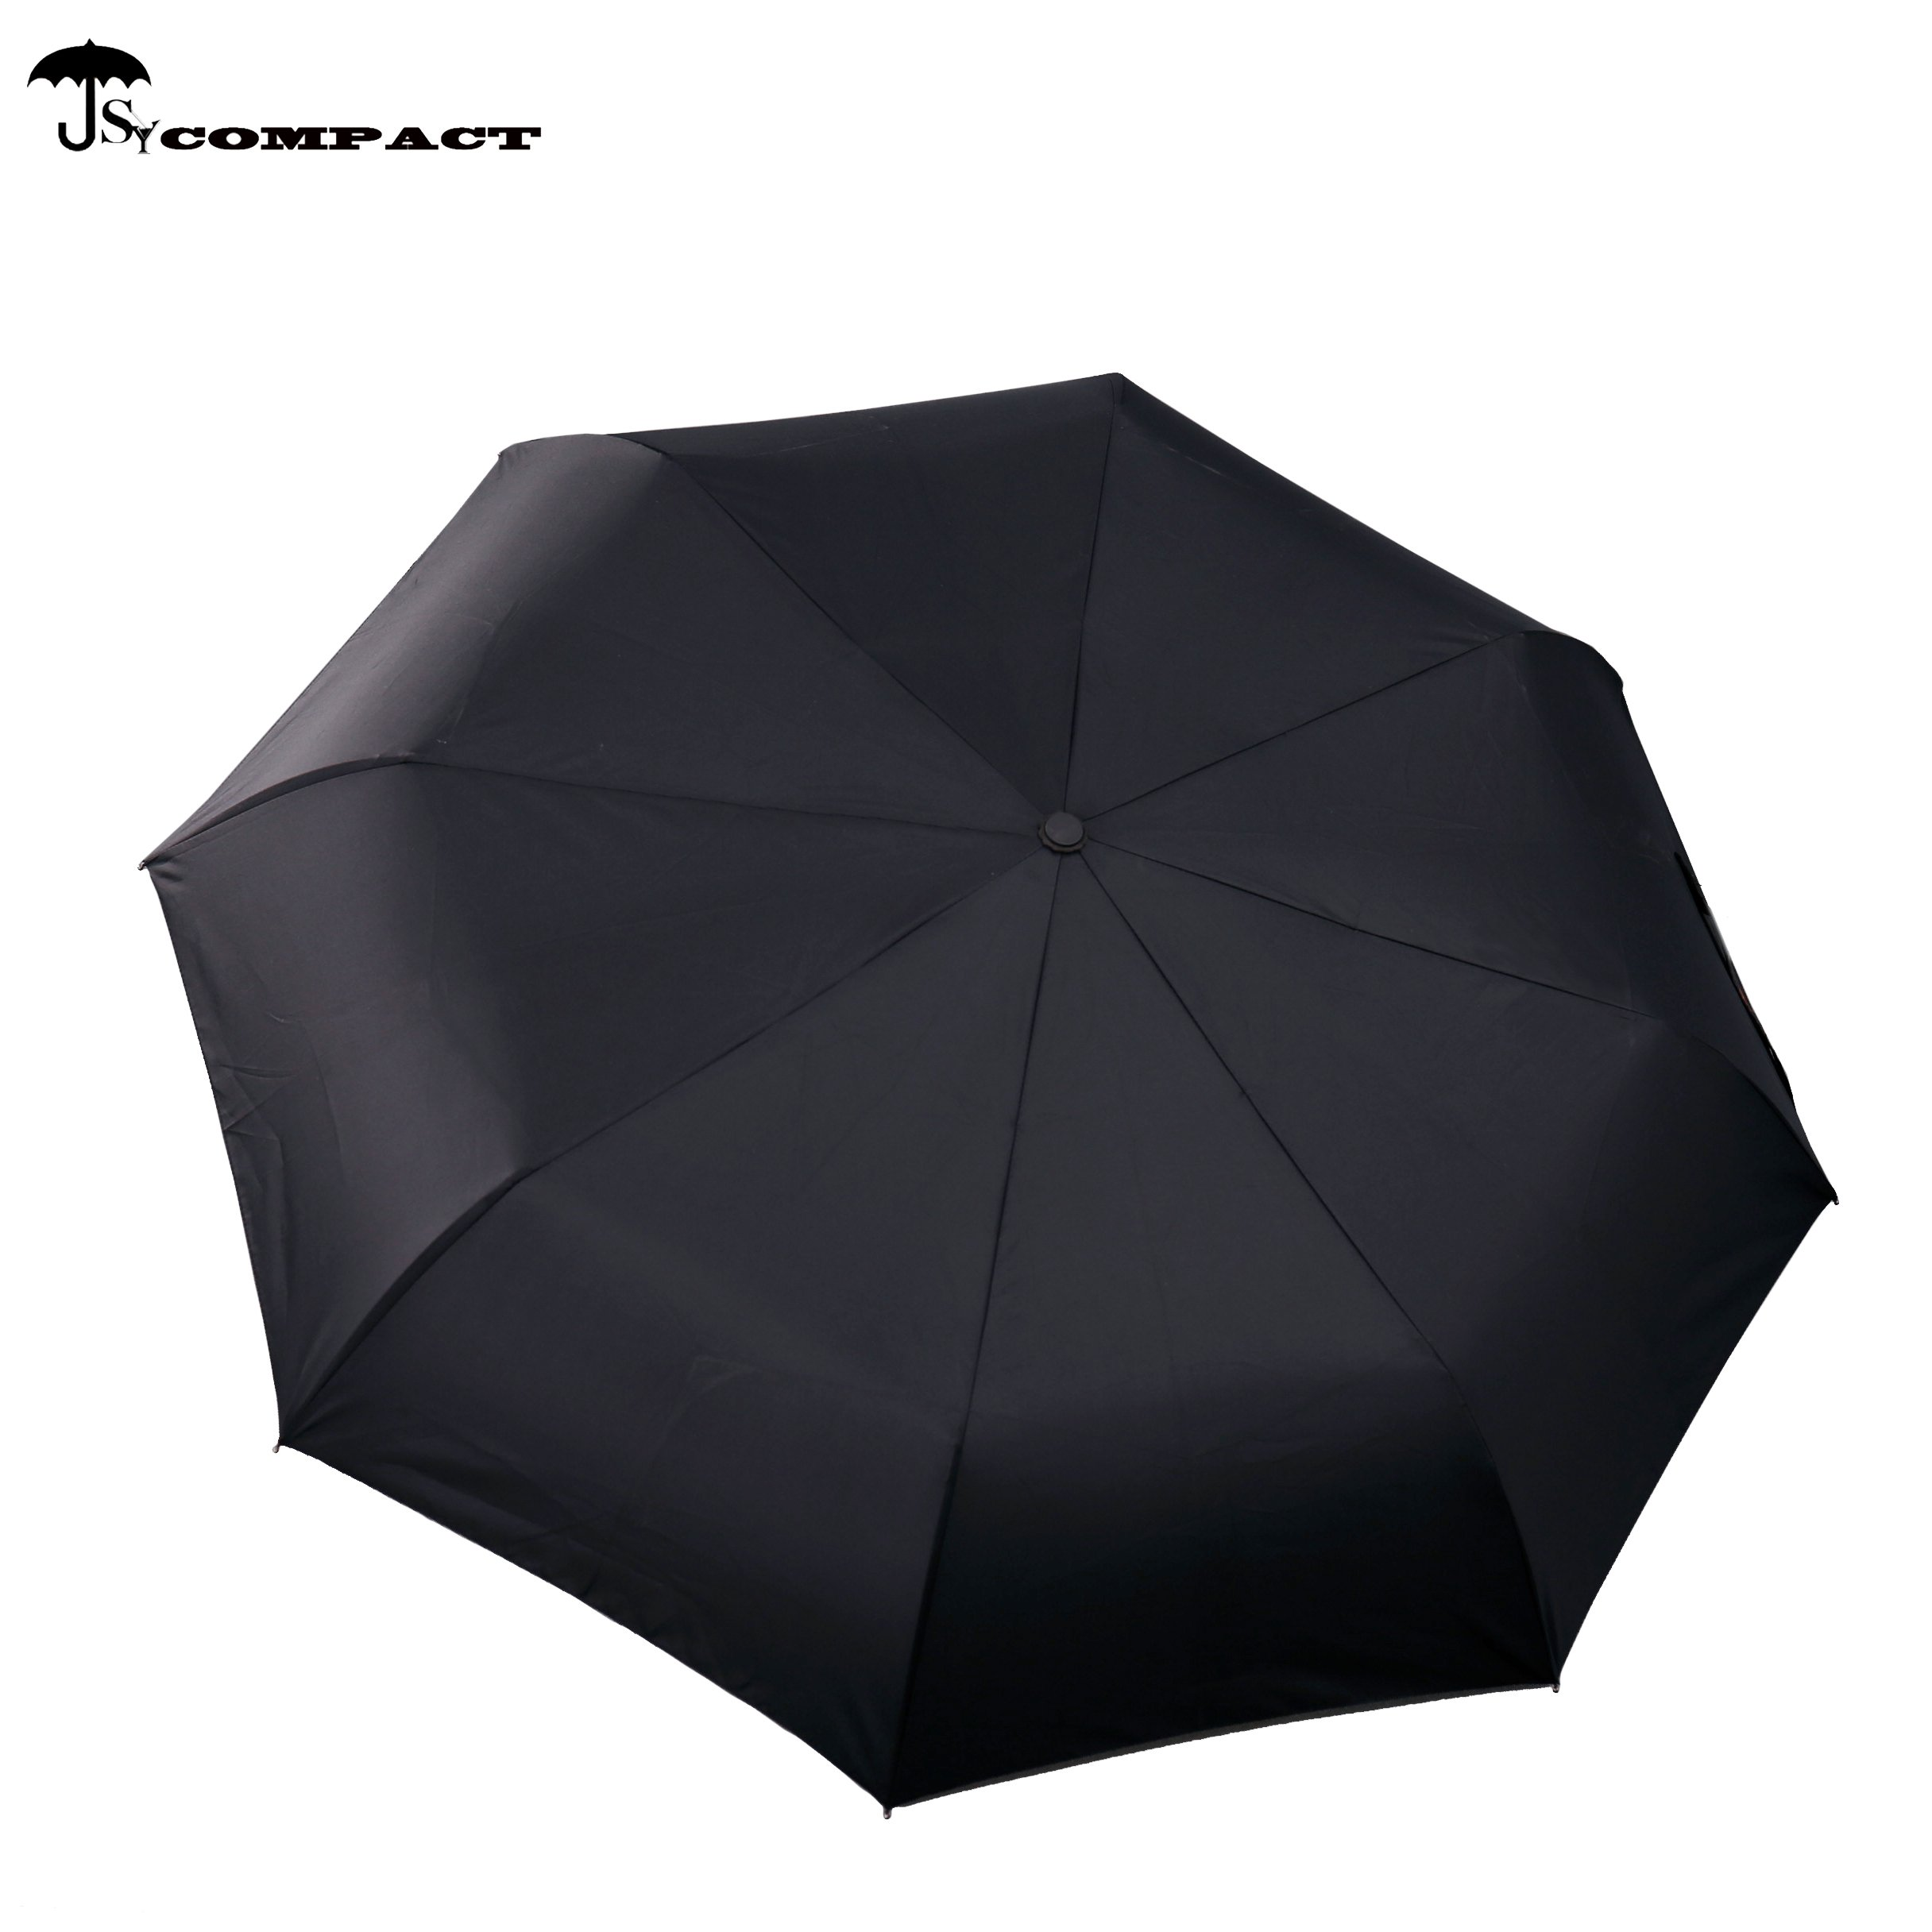 SY COMPACT Travel Umbrella Windproof Automatic Lightweight Unbreakable Umbrellas-Factory Outlet Umbrella (Black) by SY COMPACT (Image #3)